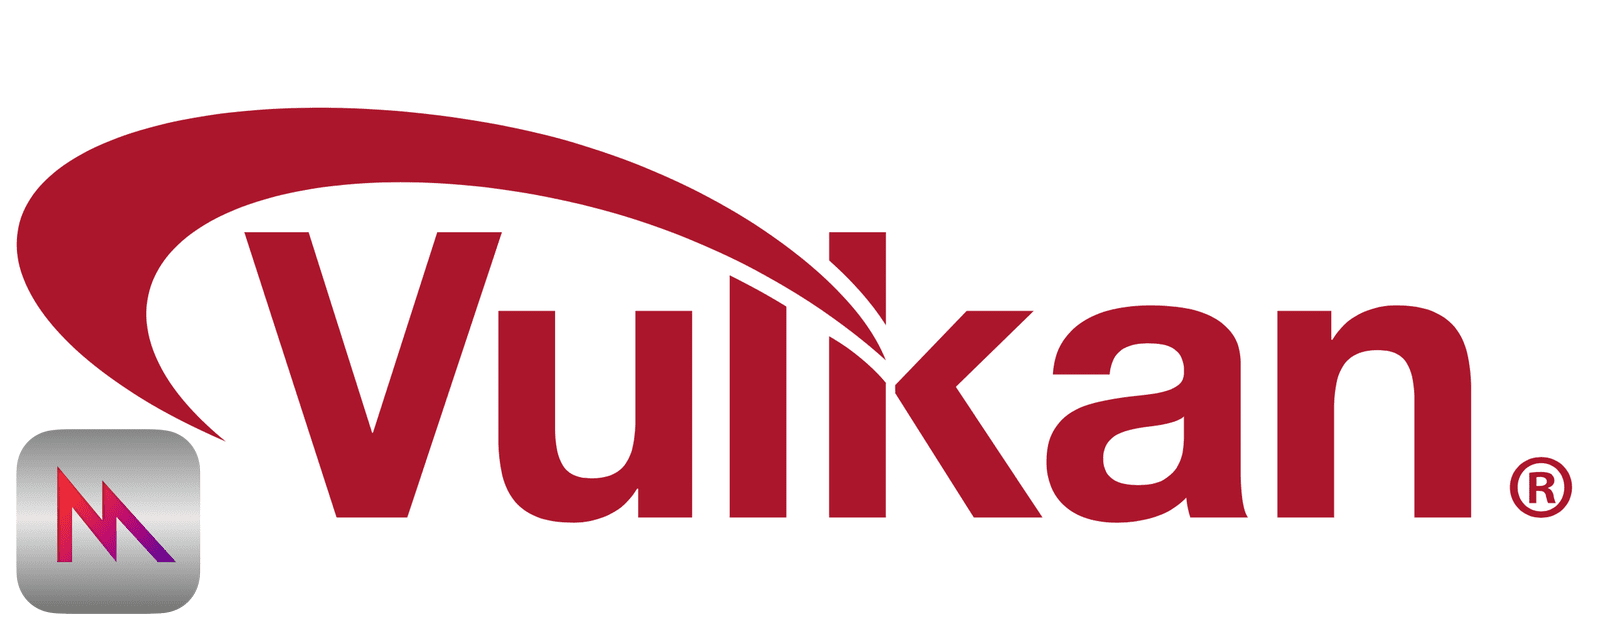 Logo of Vulkan, a GPU API coming to macOS and iOS.